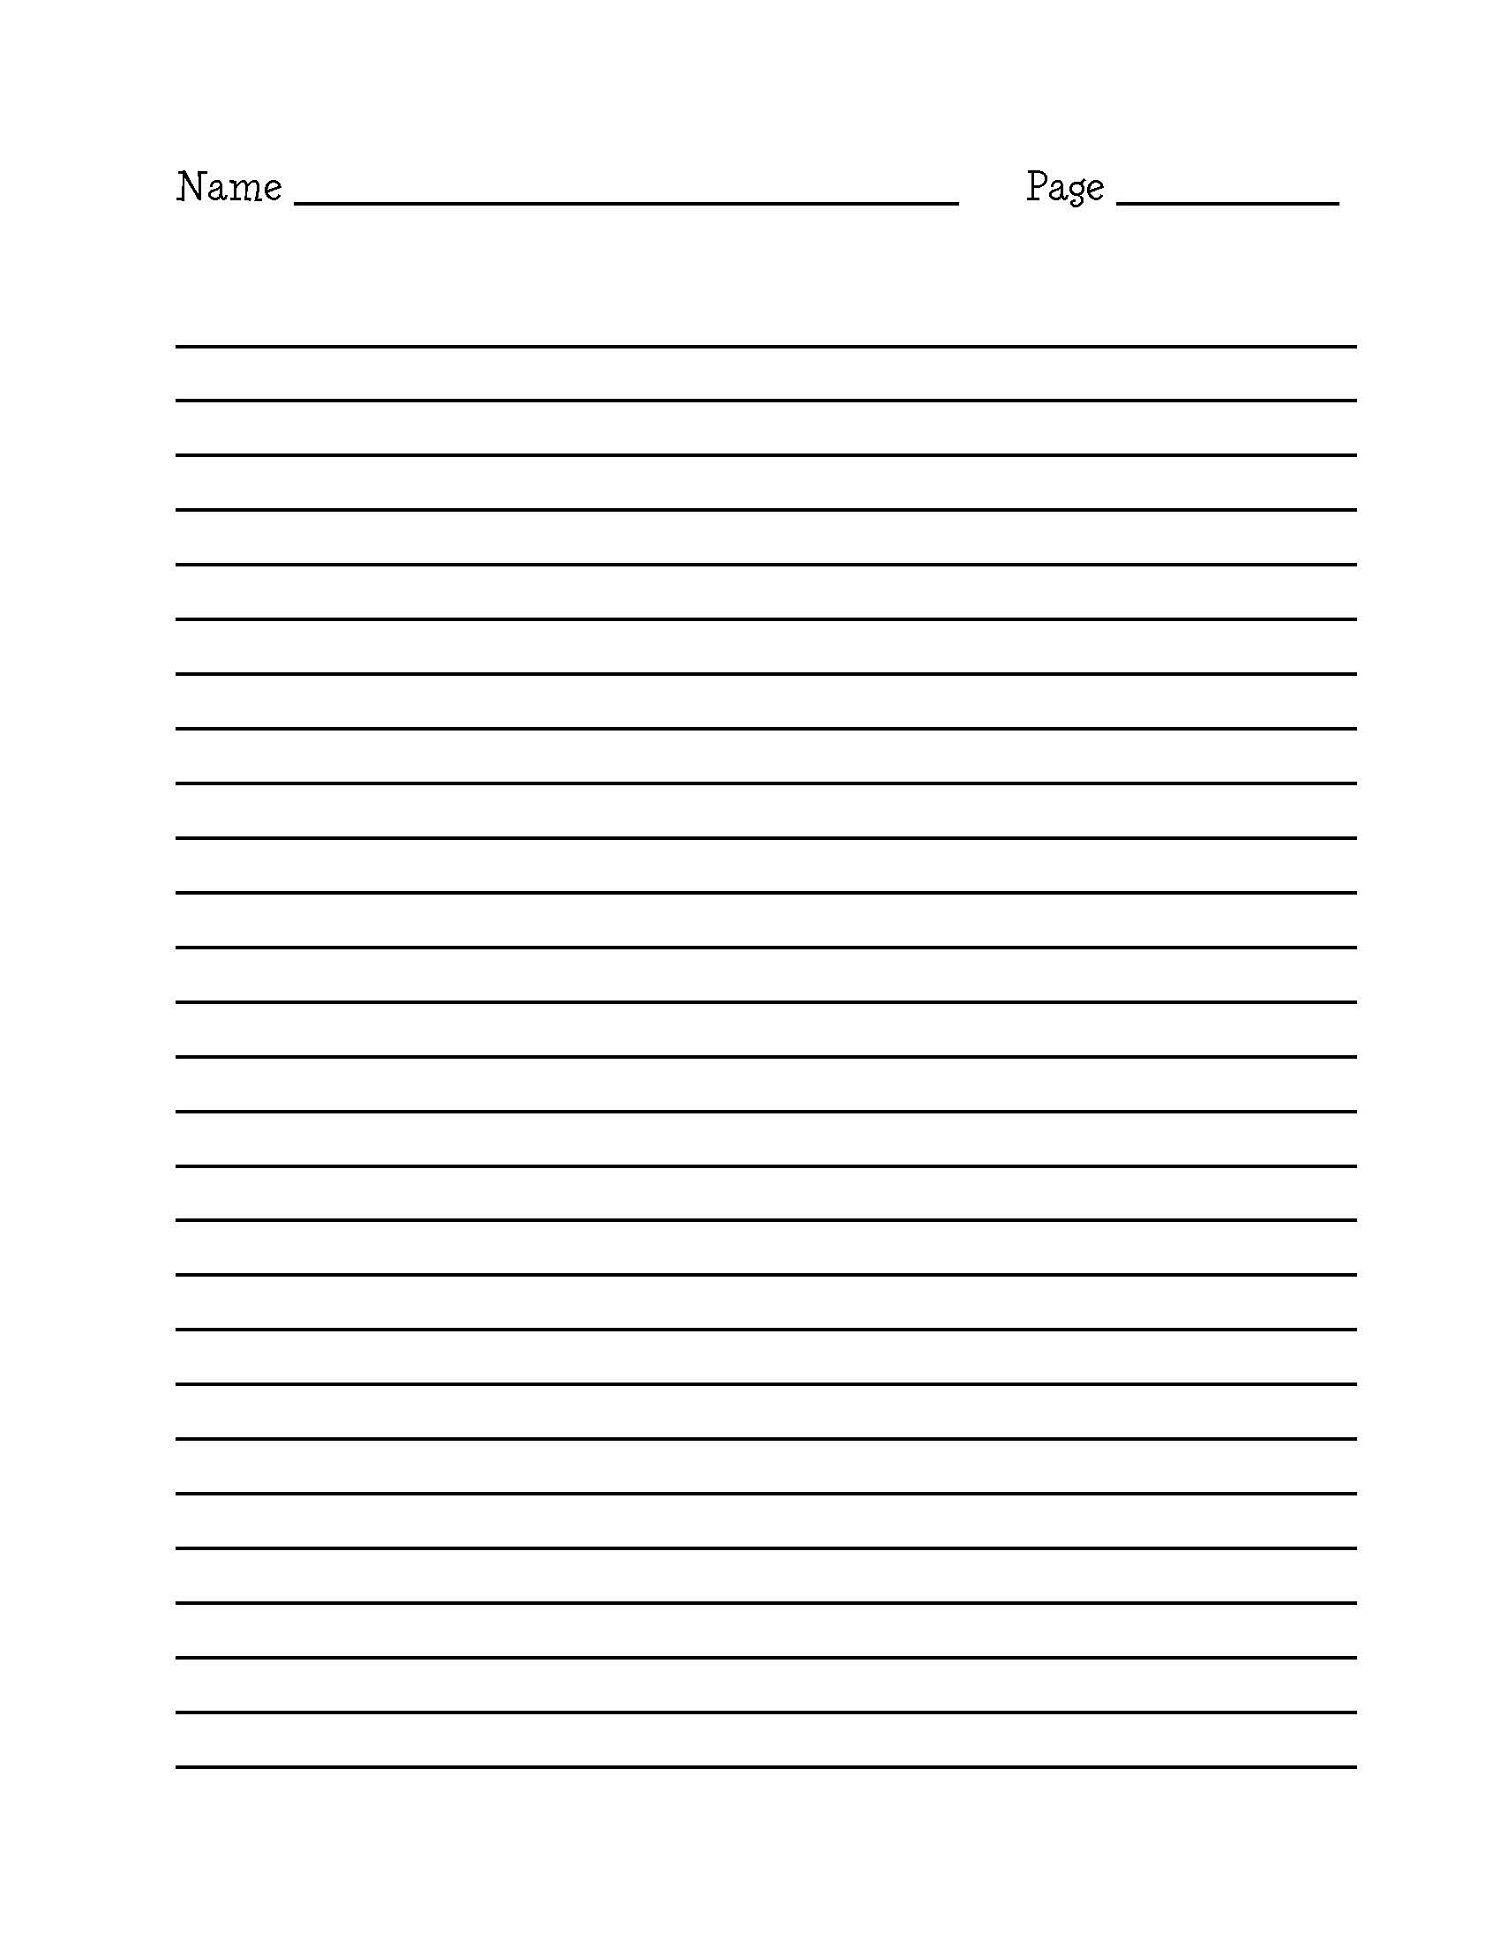 Free Writing Paper Doc Printable Writing Paper Border Writing - Elementary Lined Paper Printable Free